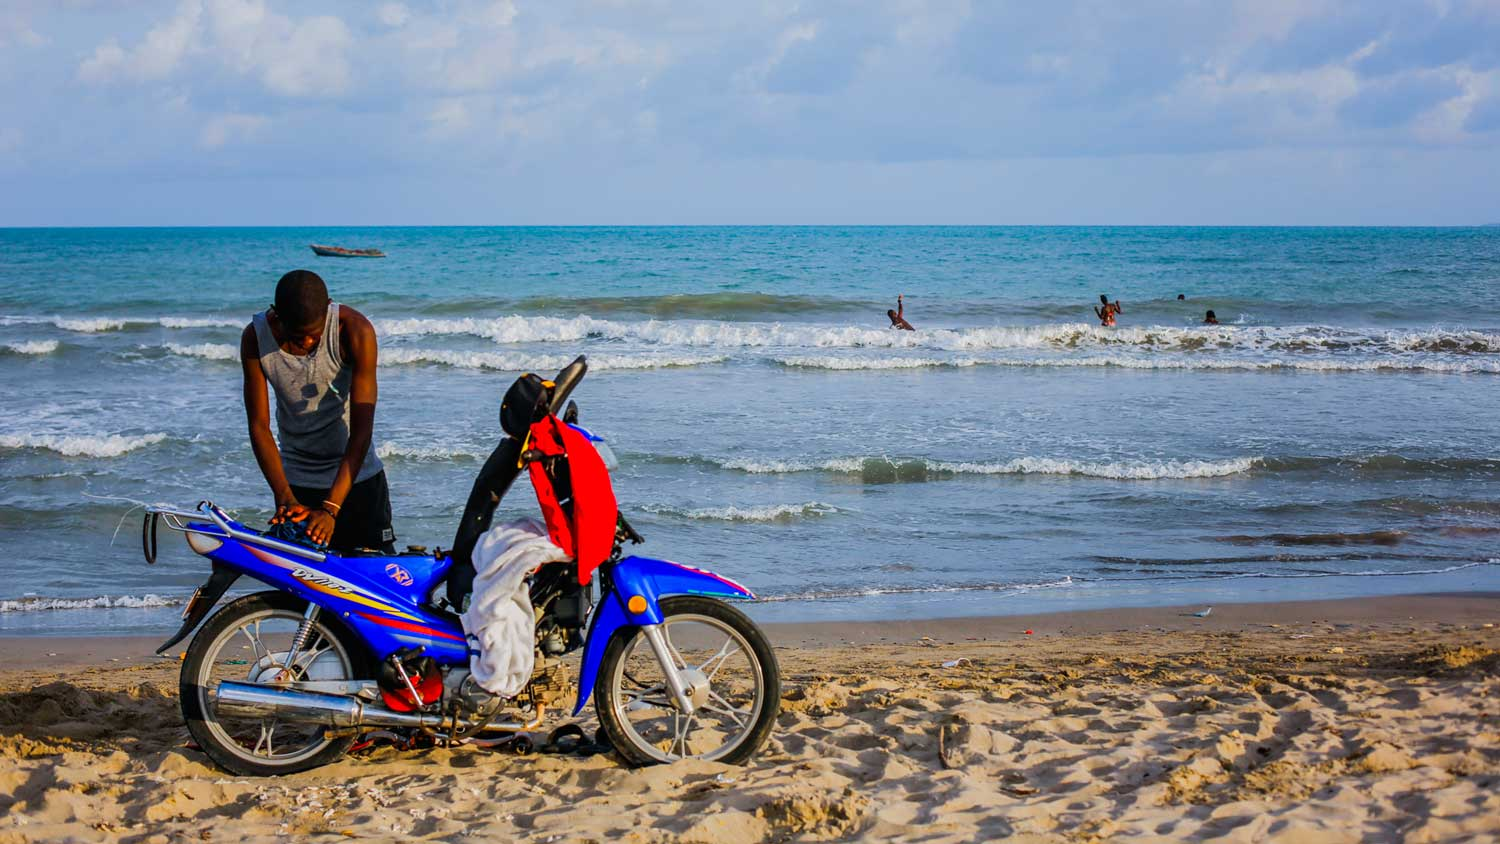 Moto on a beach in Haiti